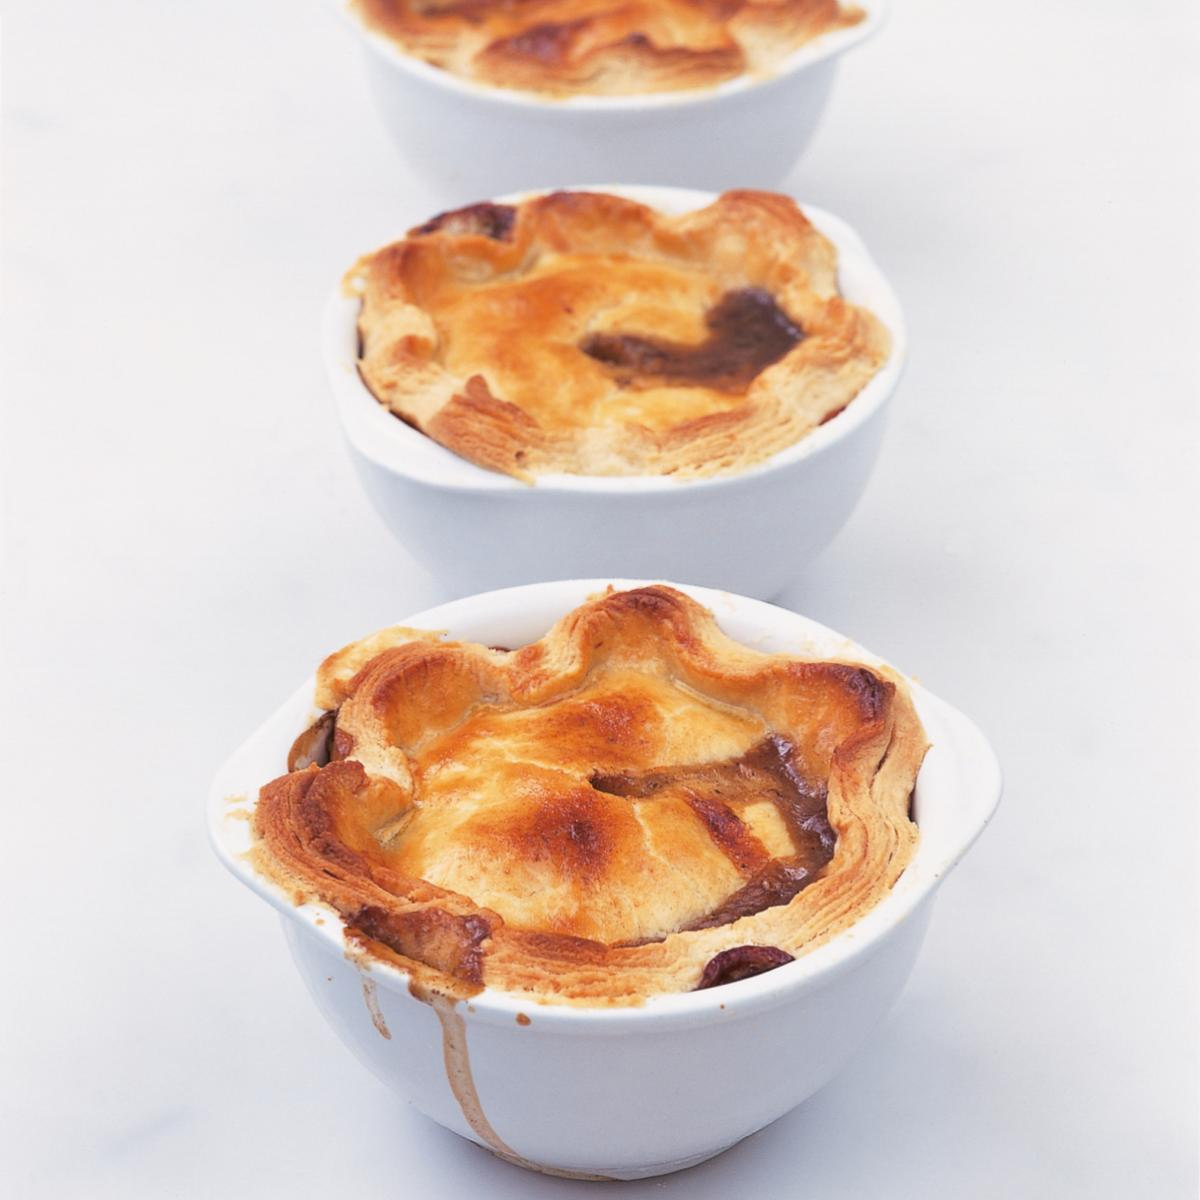 Htc individual steak mushroom and kidney pies